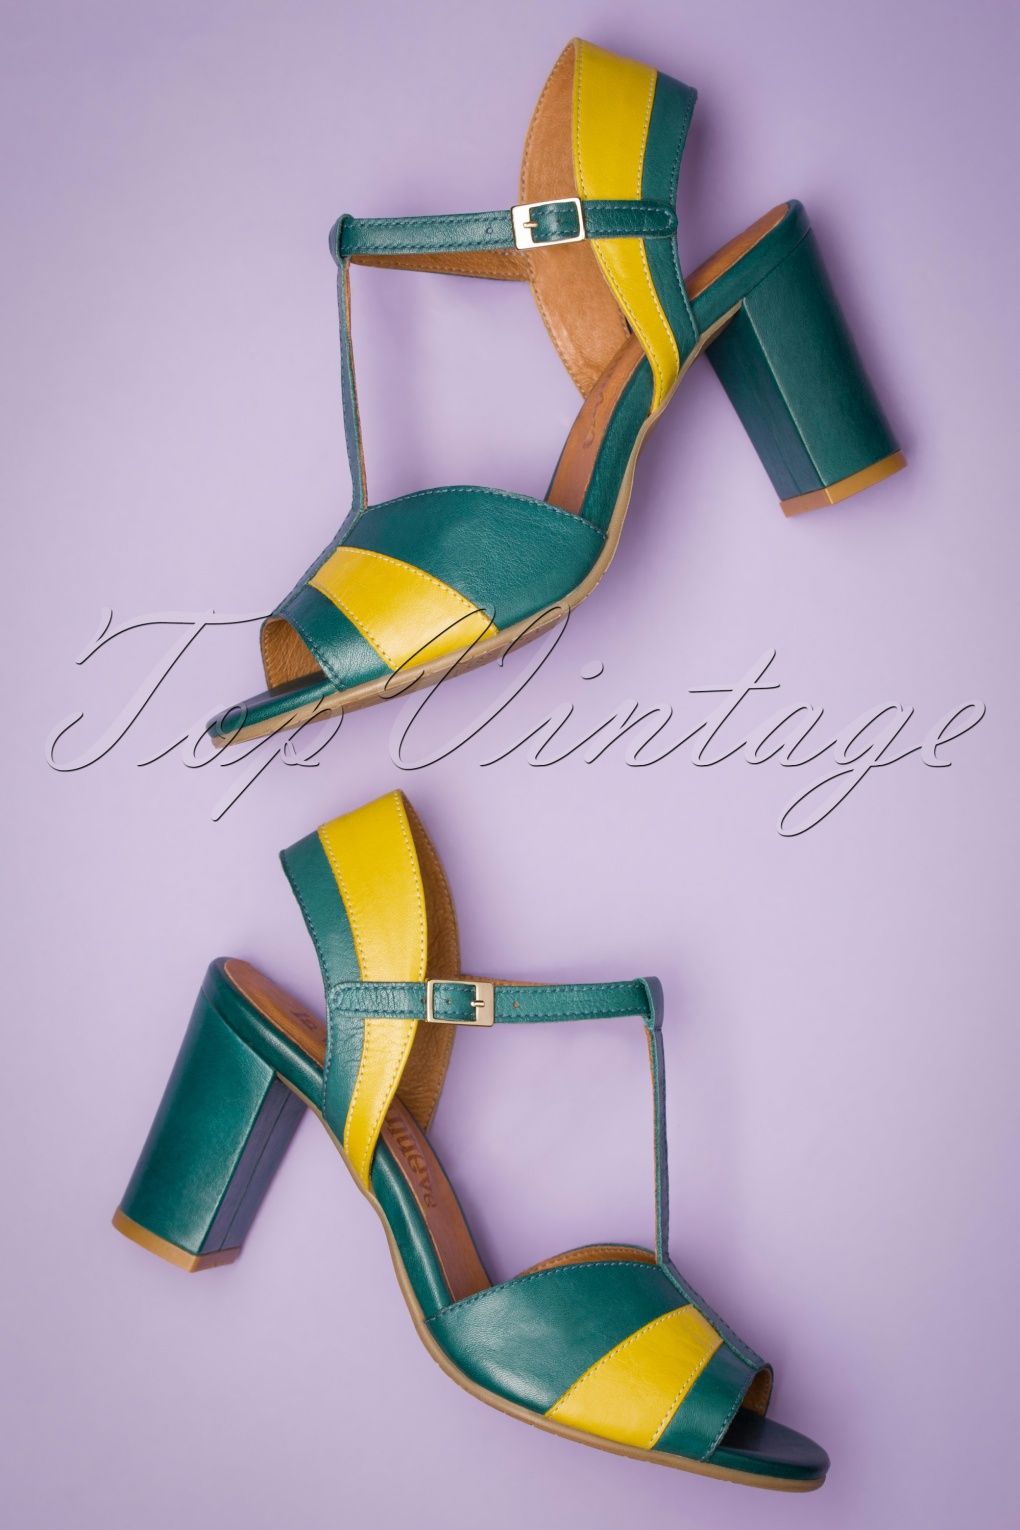 1960s Style Clothing & 60s Fashion 60s Candy High Heel Sandals in Dark Turquoise and Yellow £24.95 AT vintagedancer.com